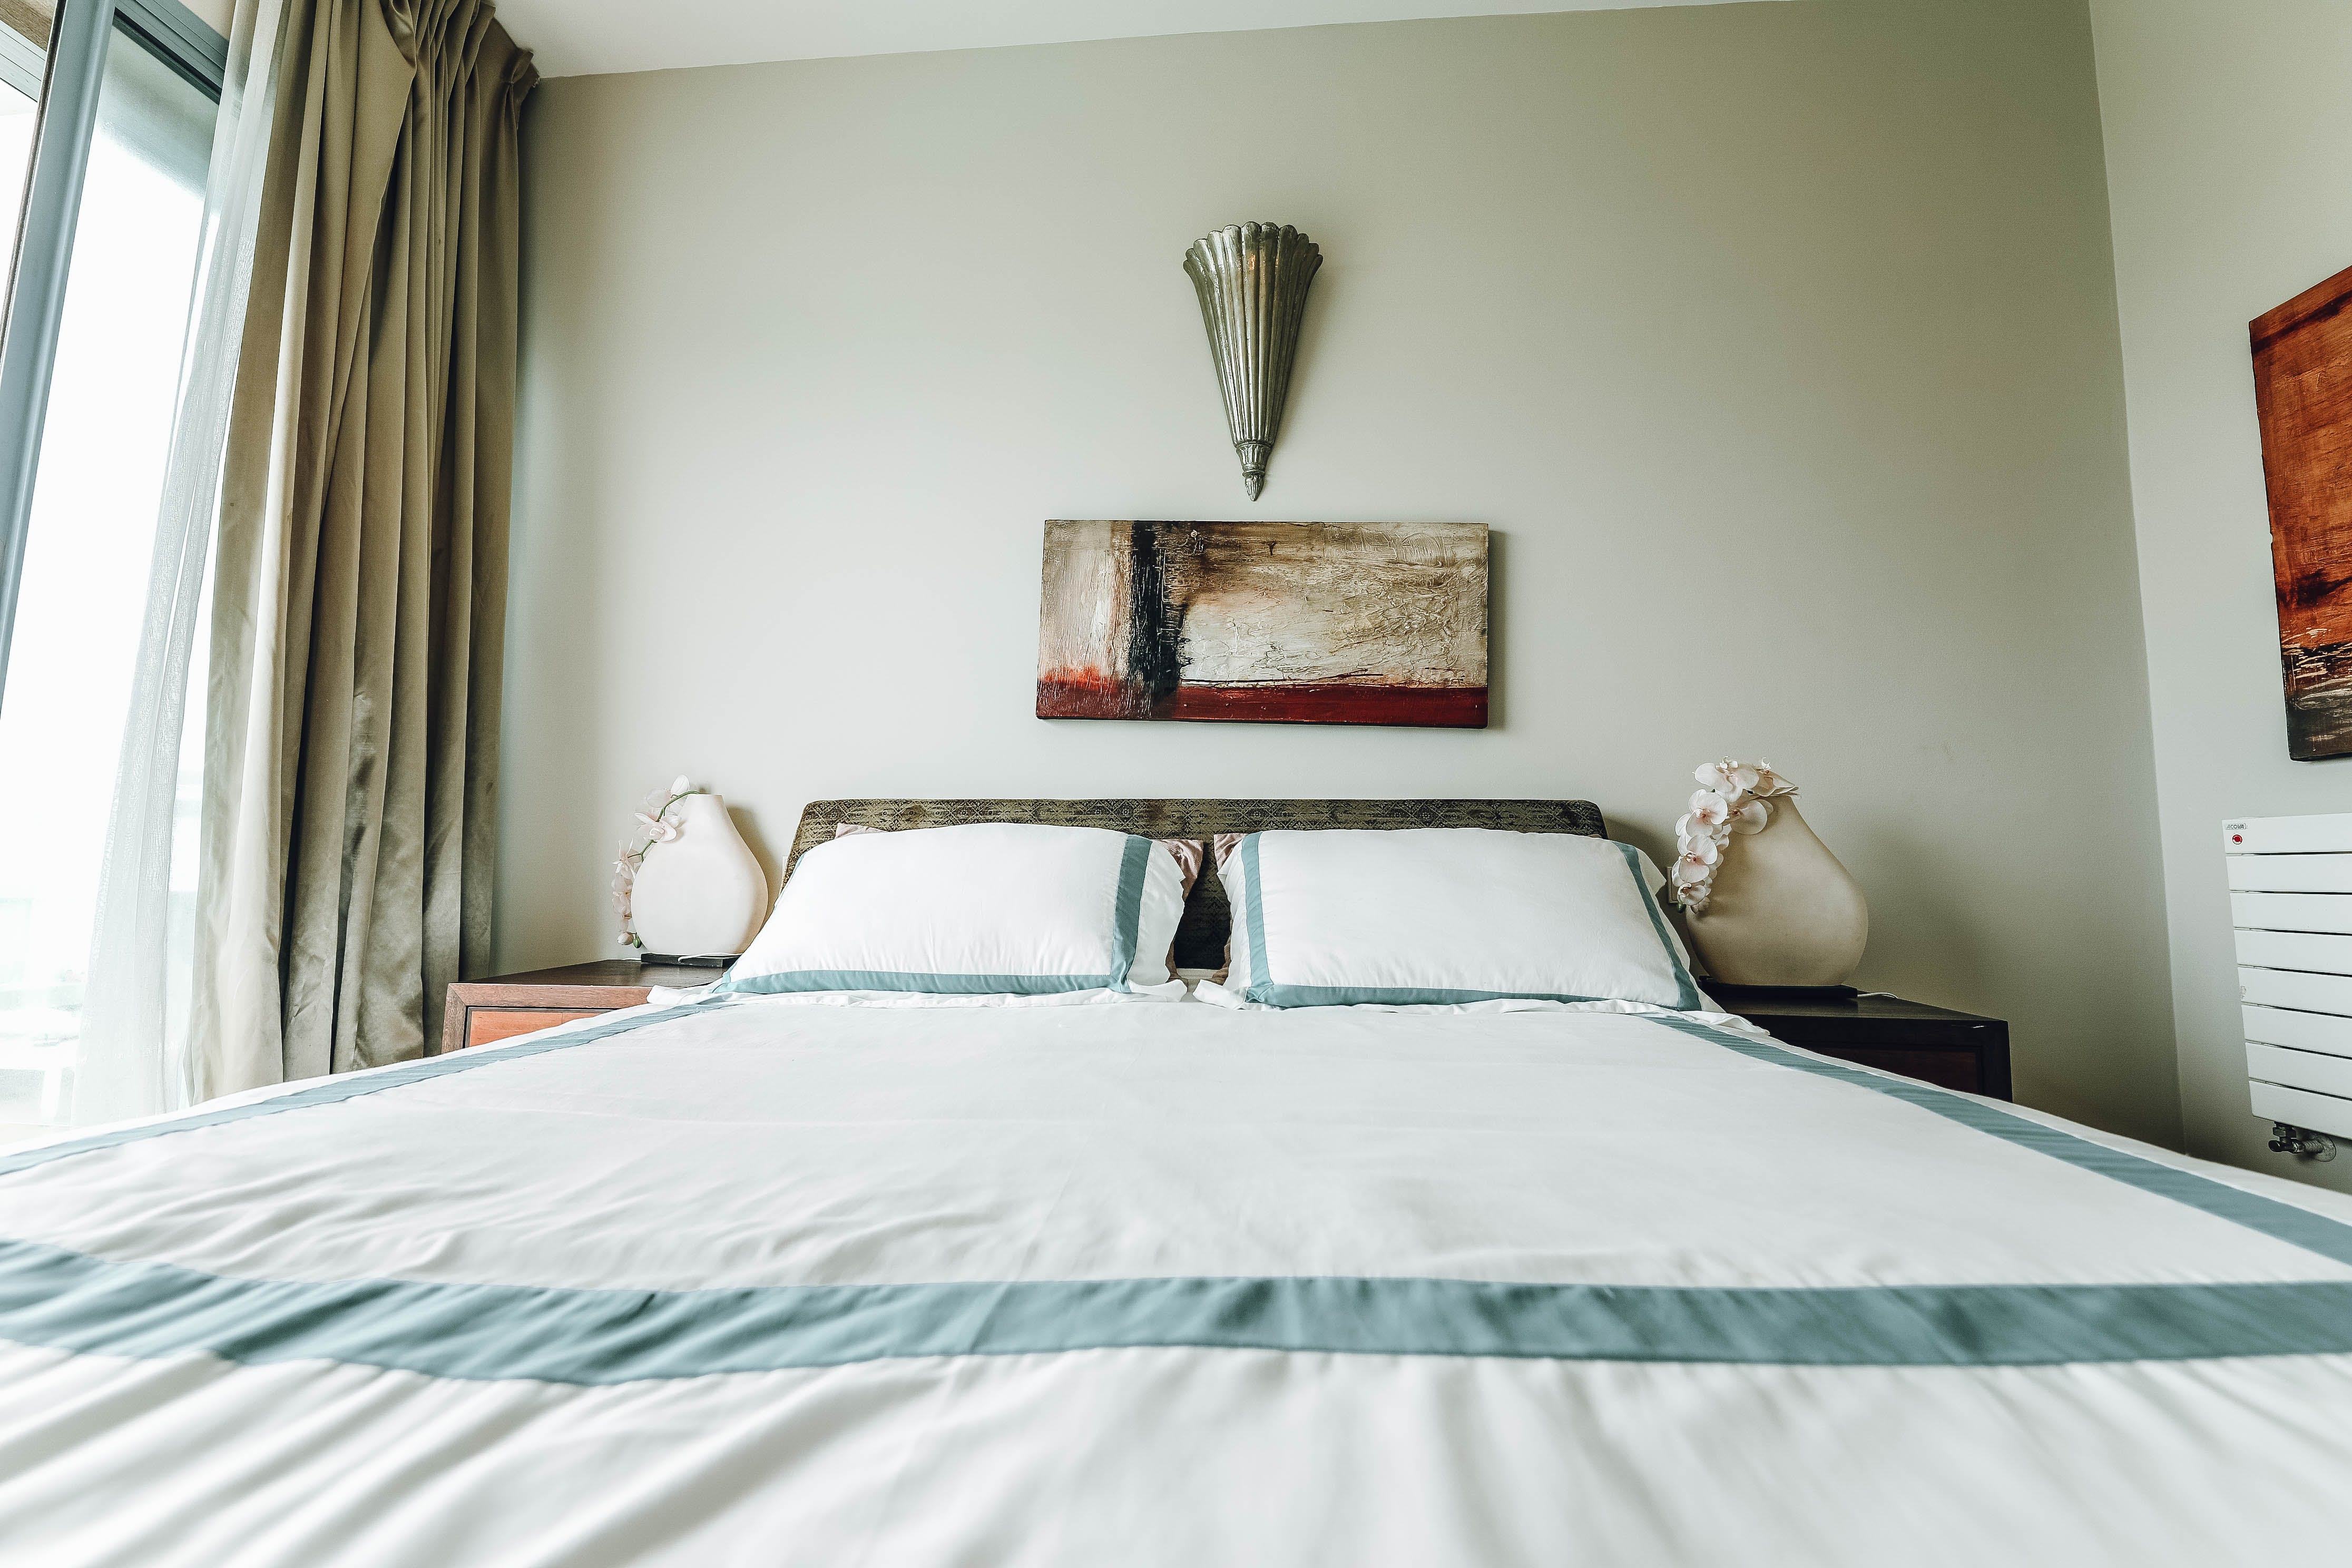 White Bed With Bedspread Near Window